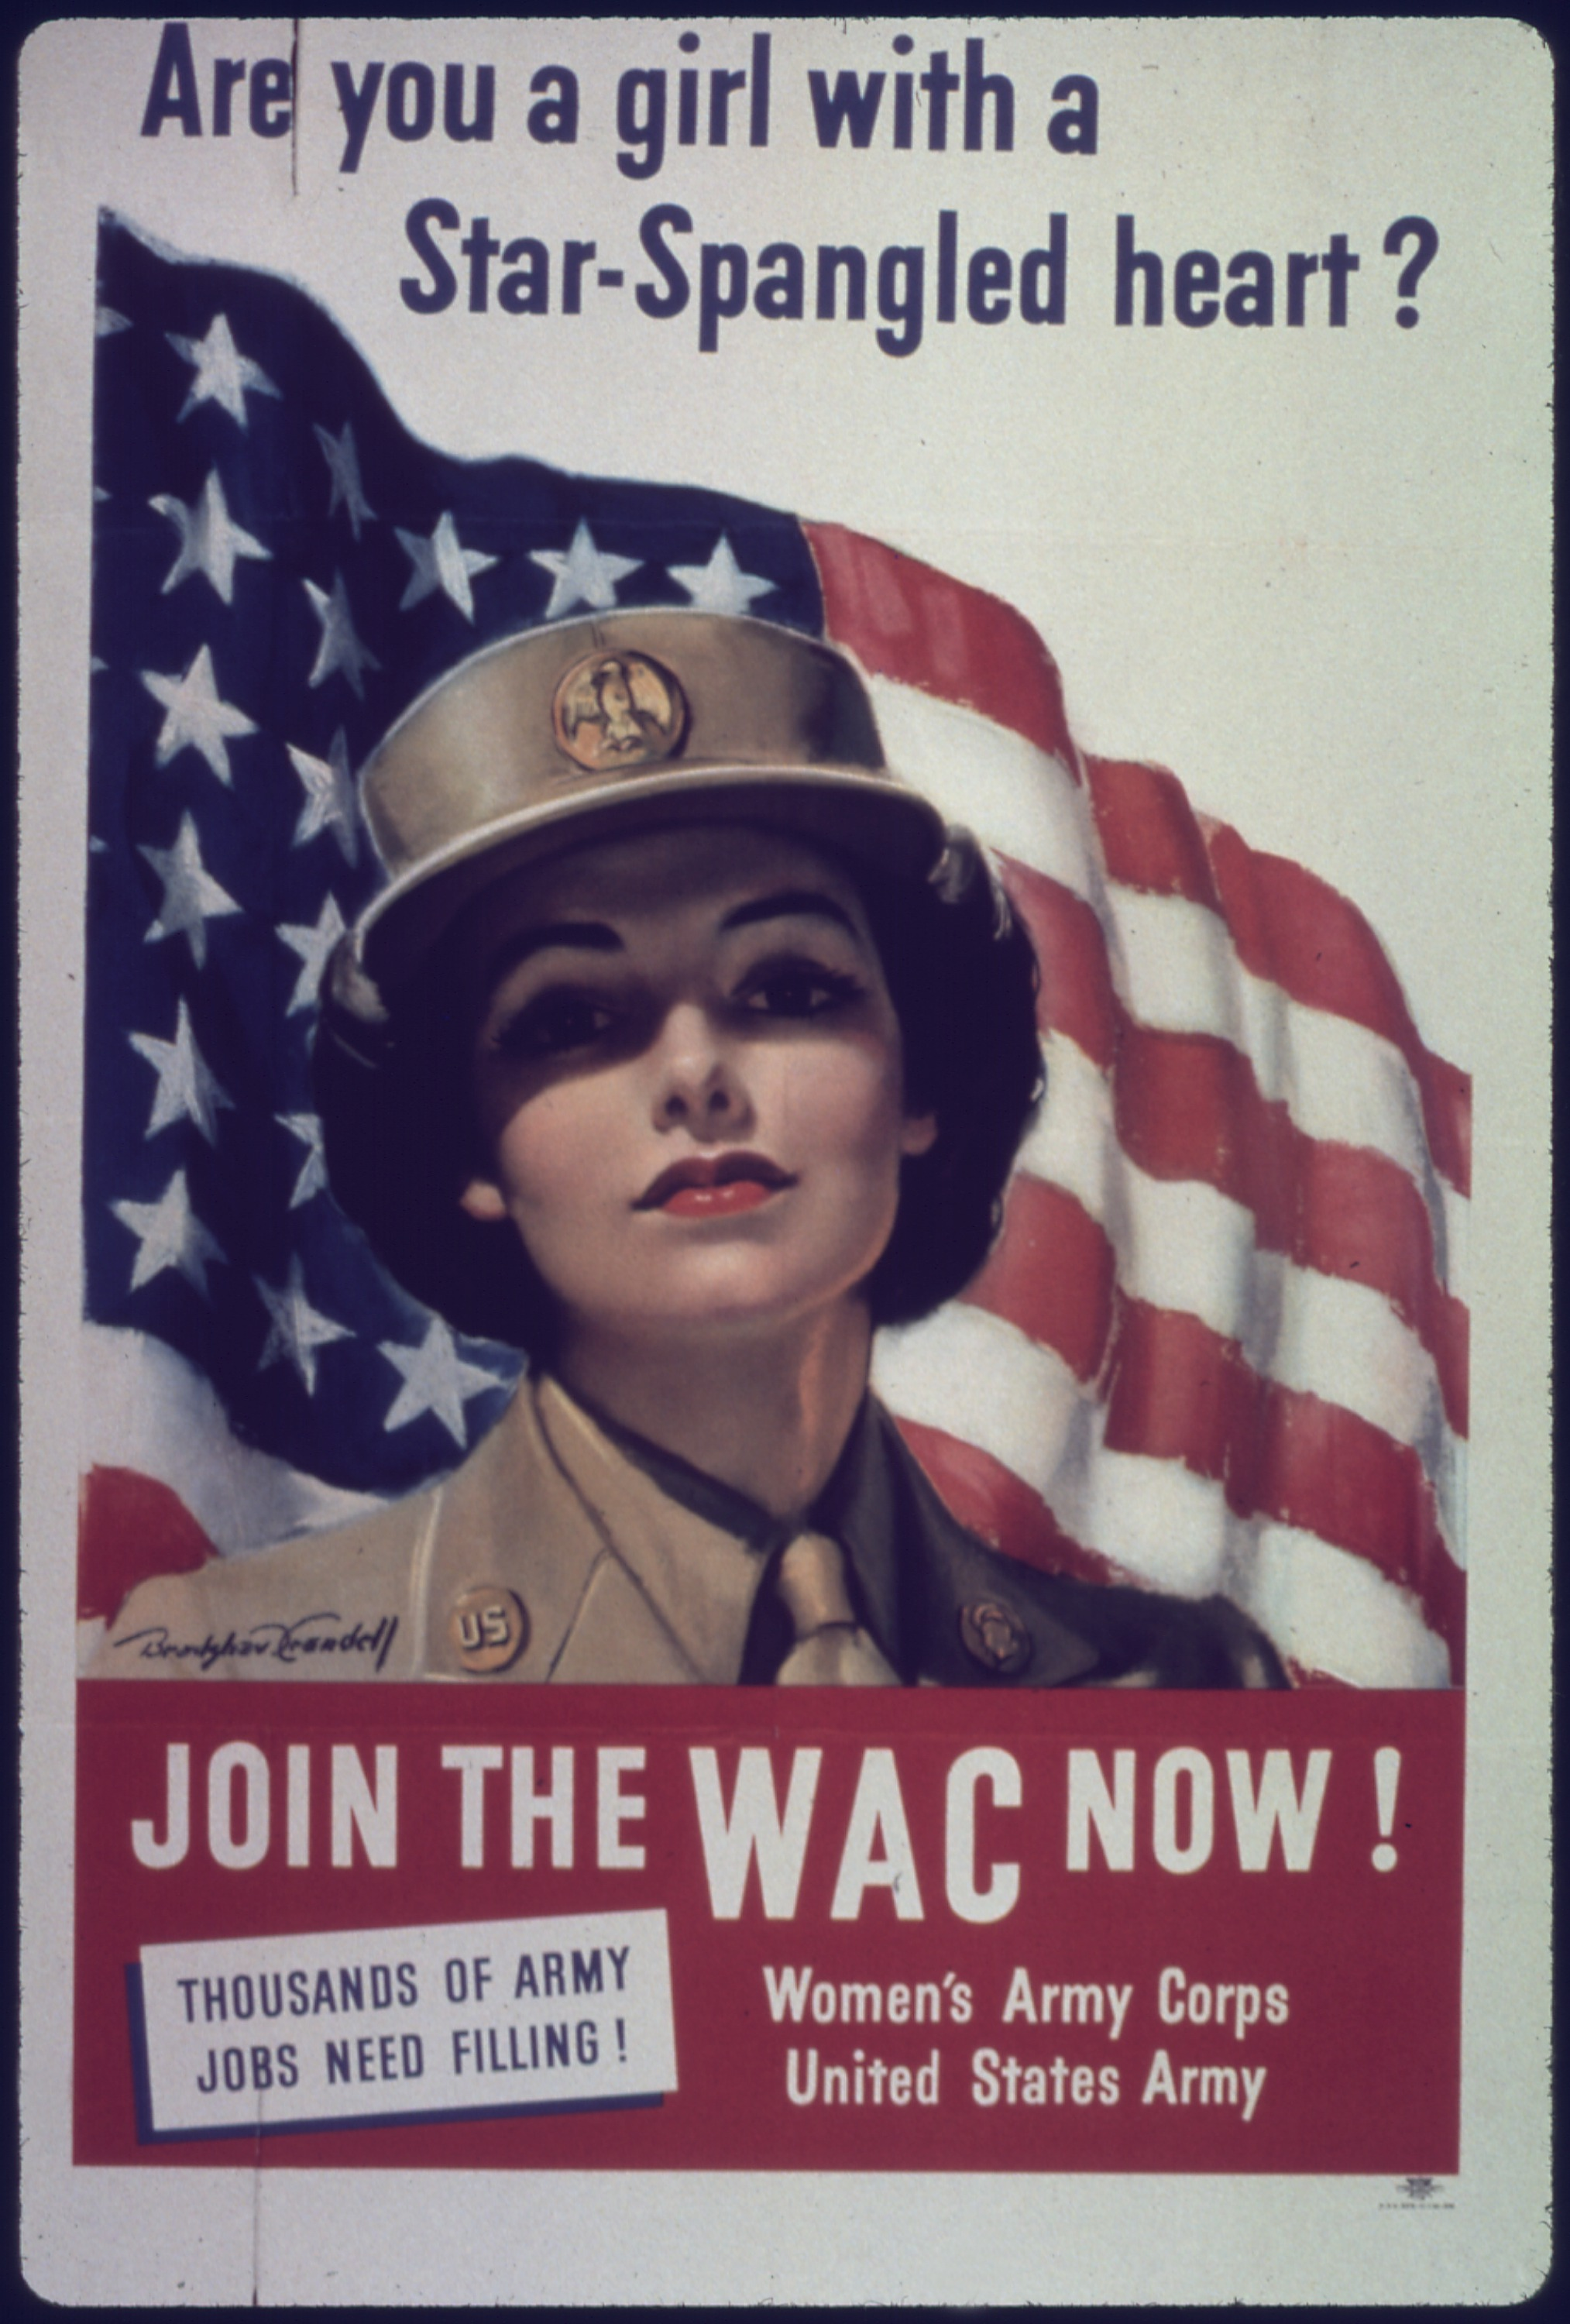 World War II Poster, 1940